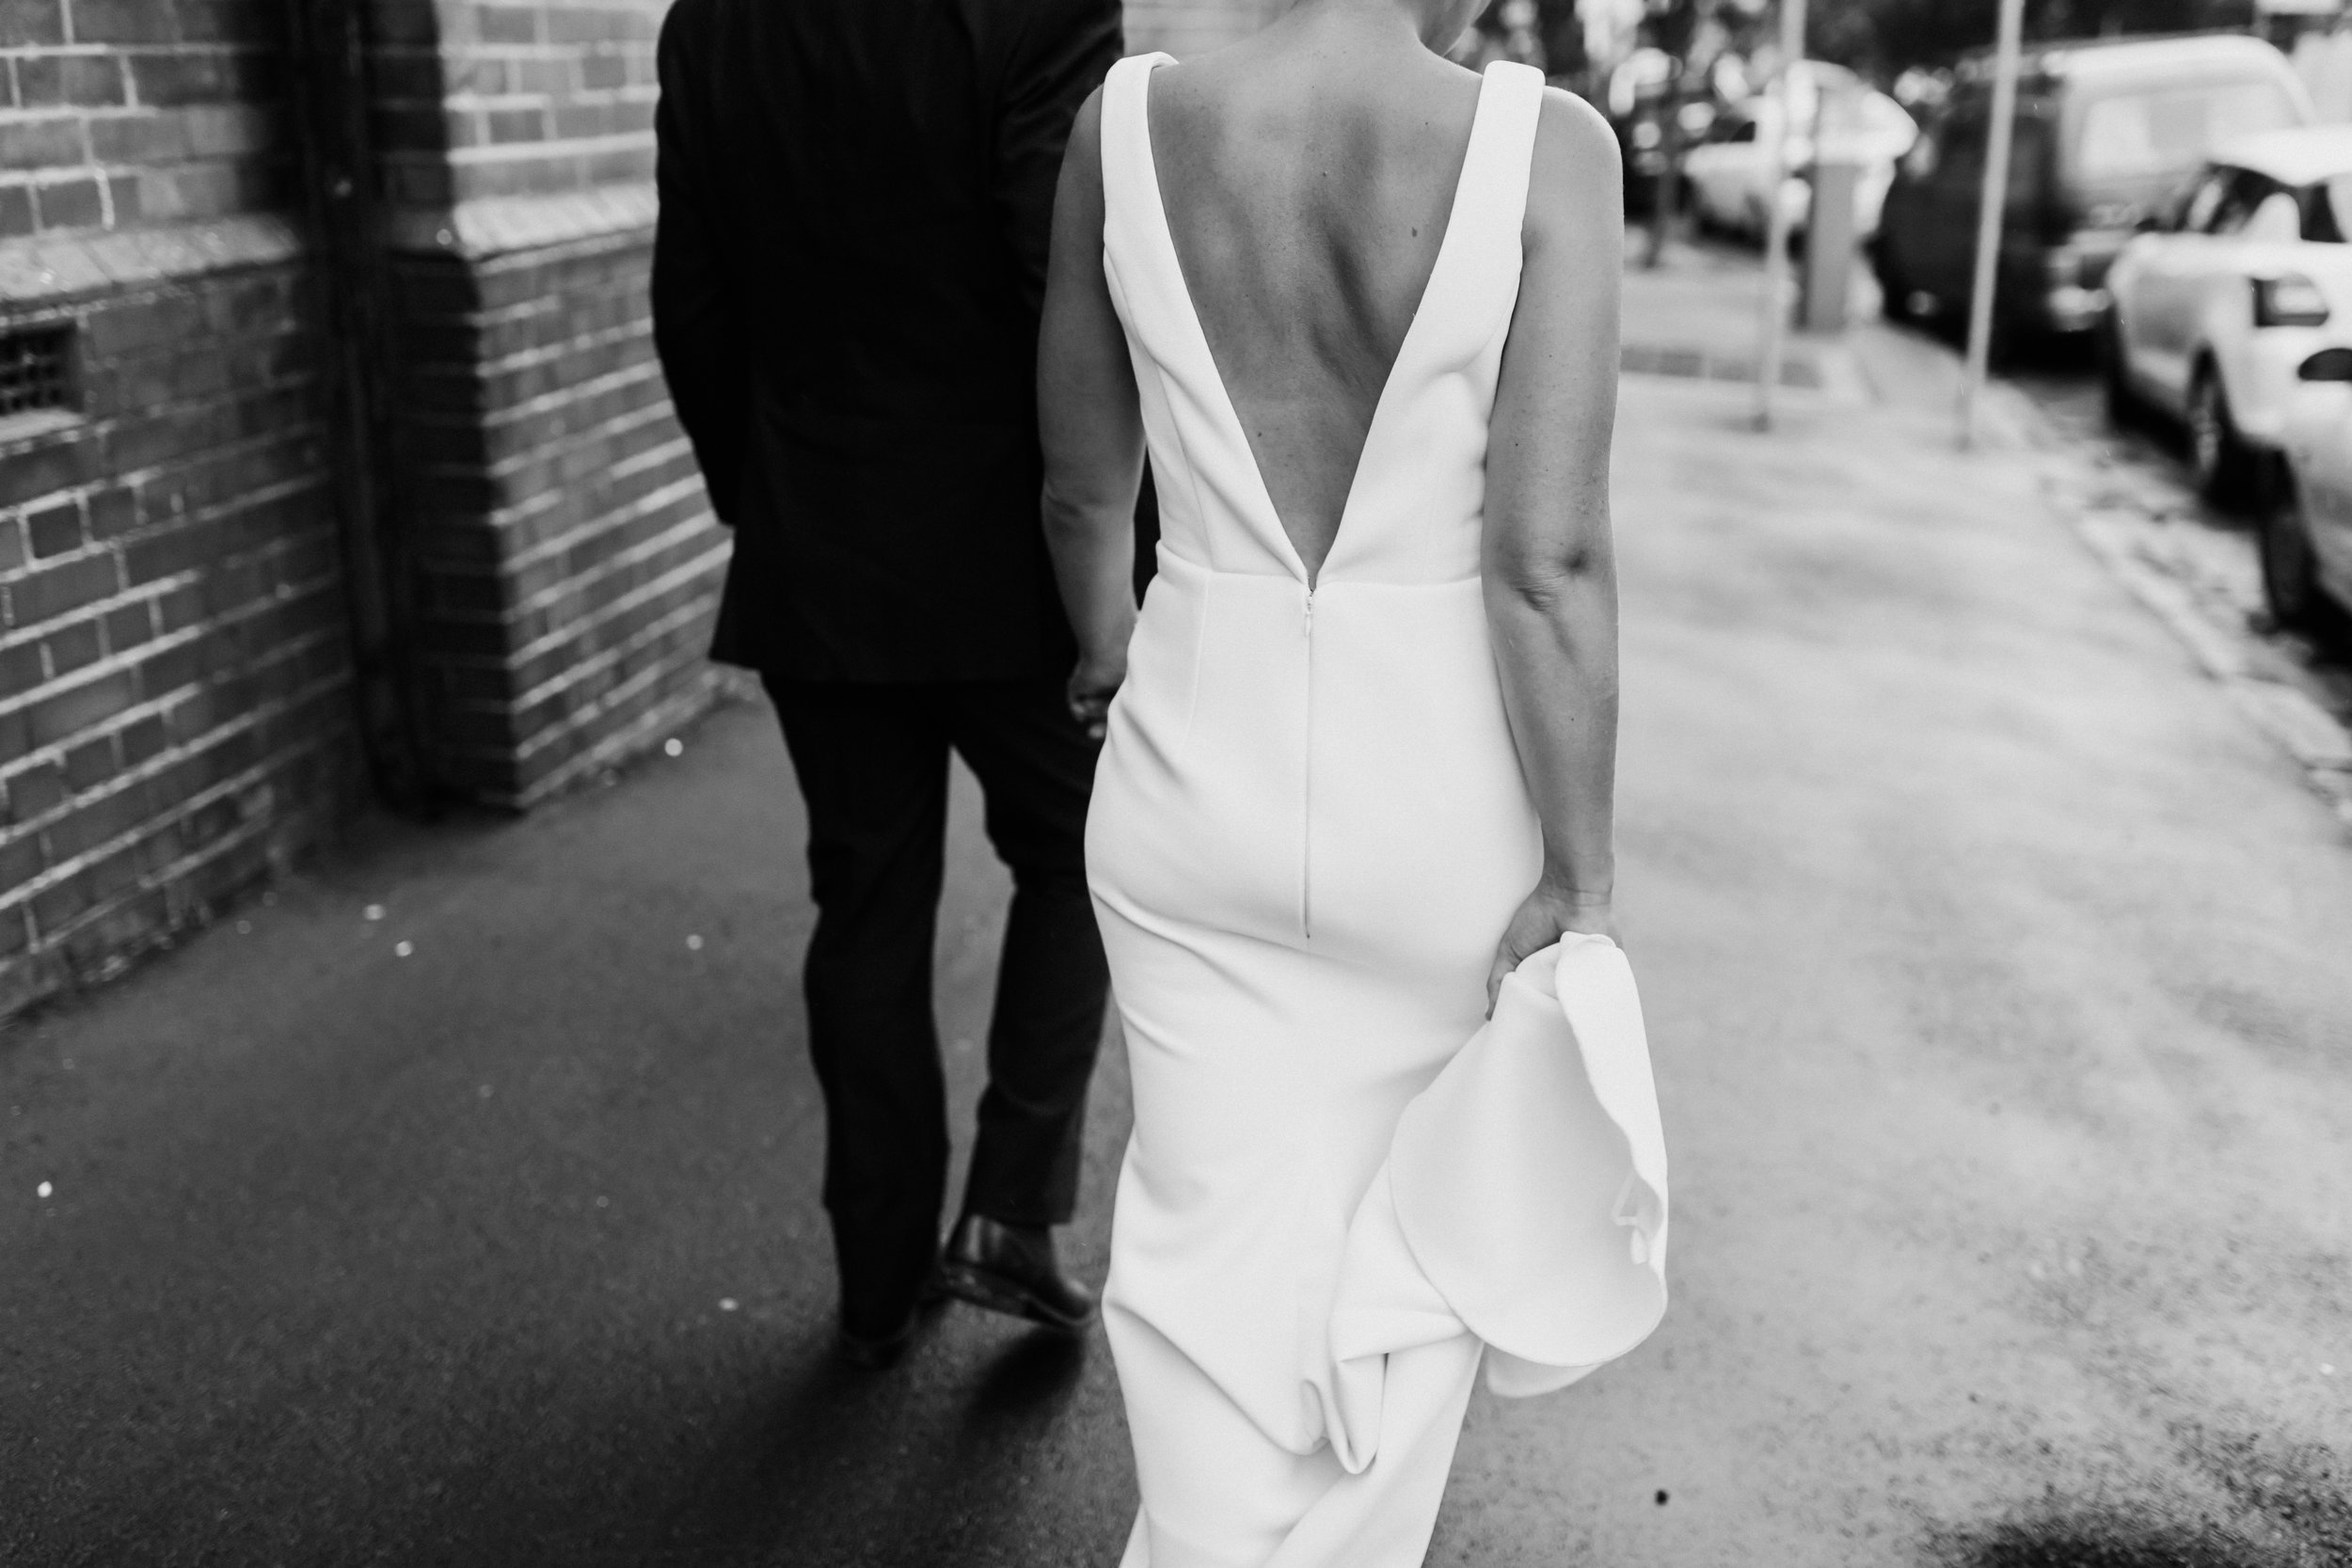 newcastle-wedding-nerida-michael-48.jpg